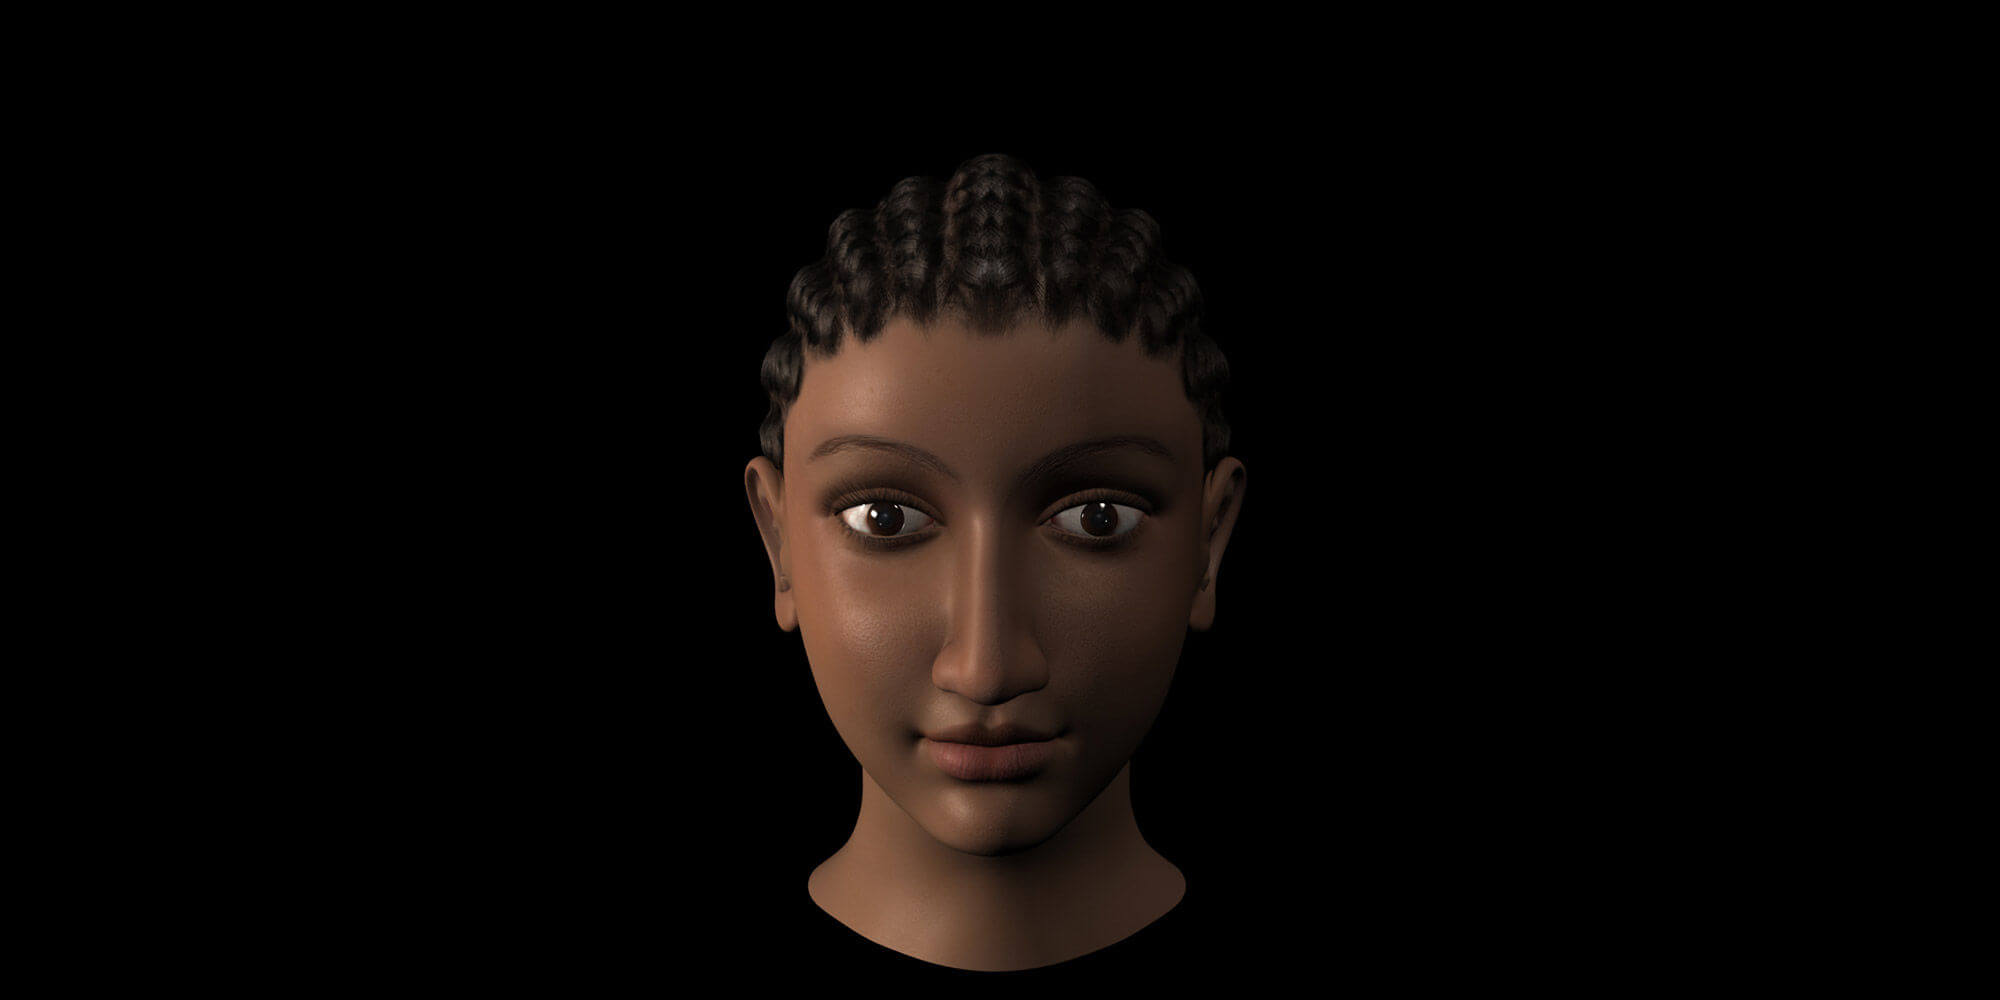 Protected: The Real Face of Cleopatra